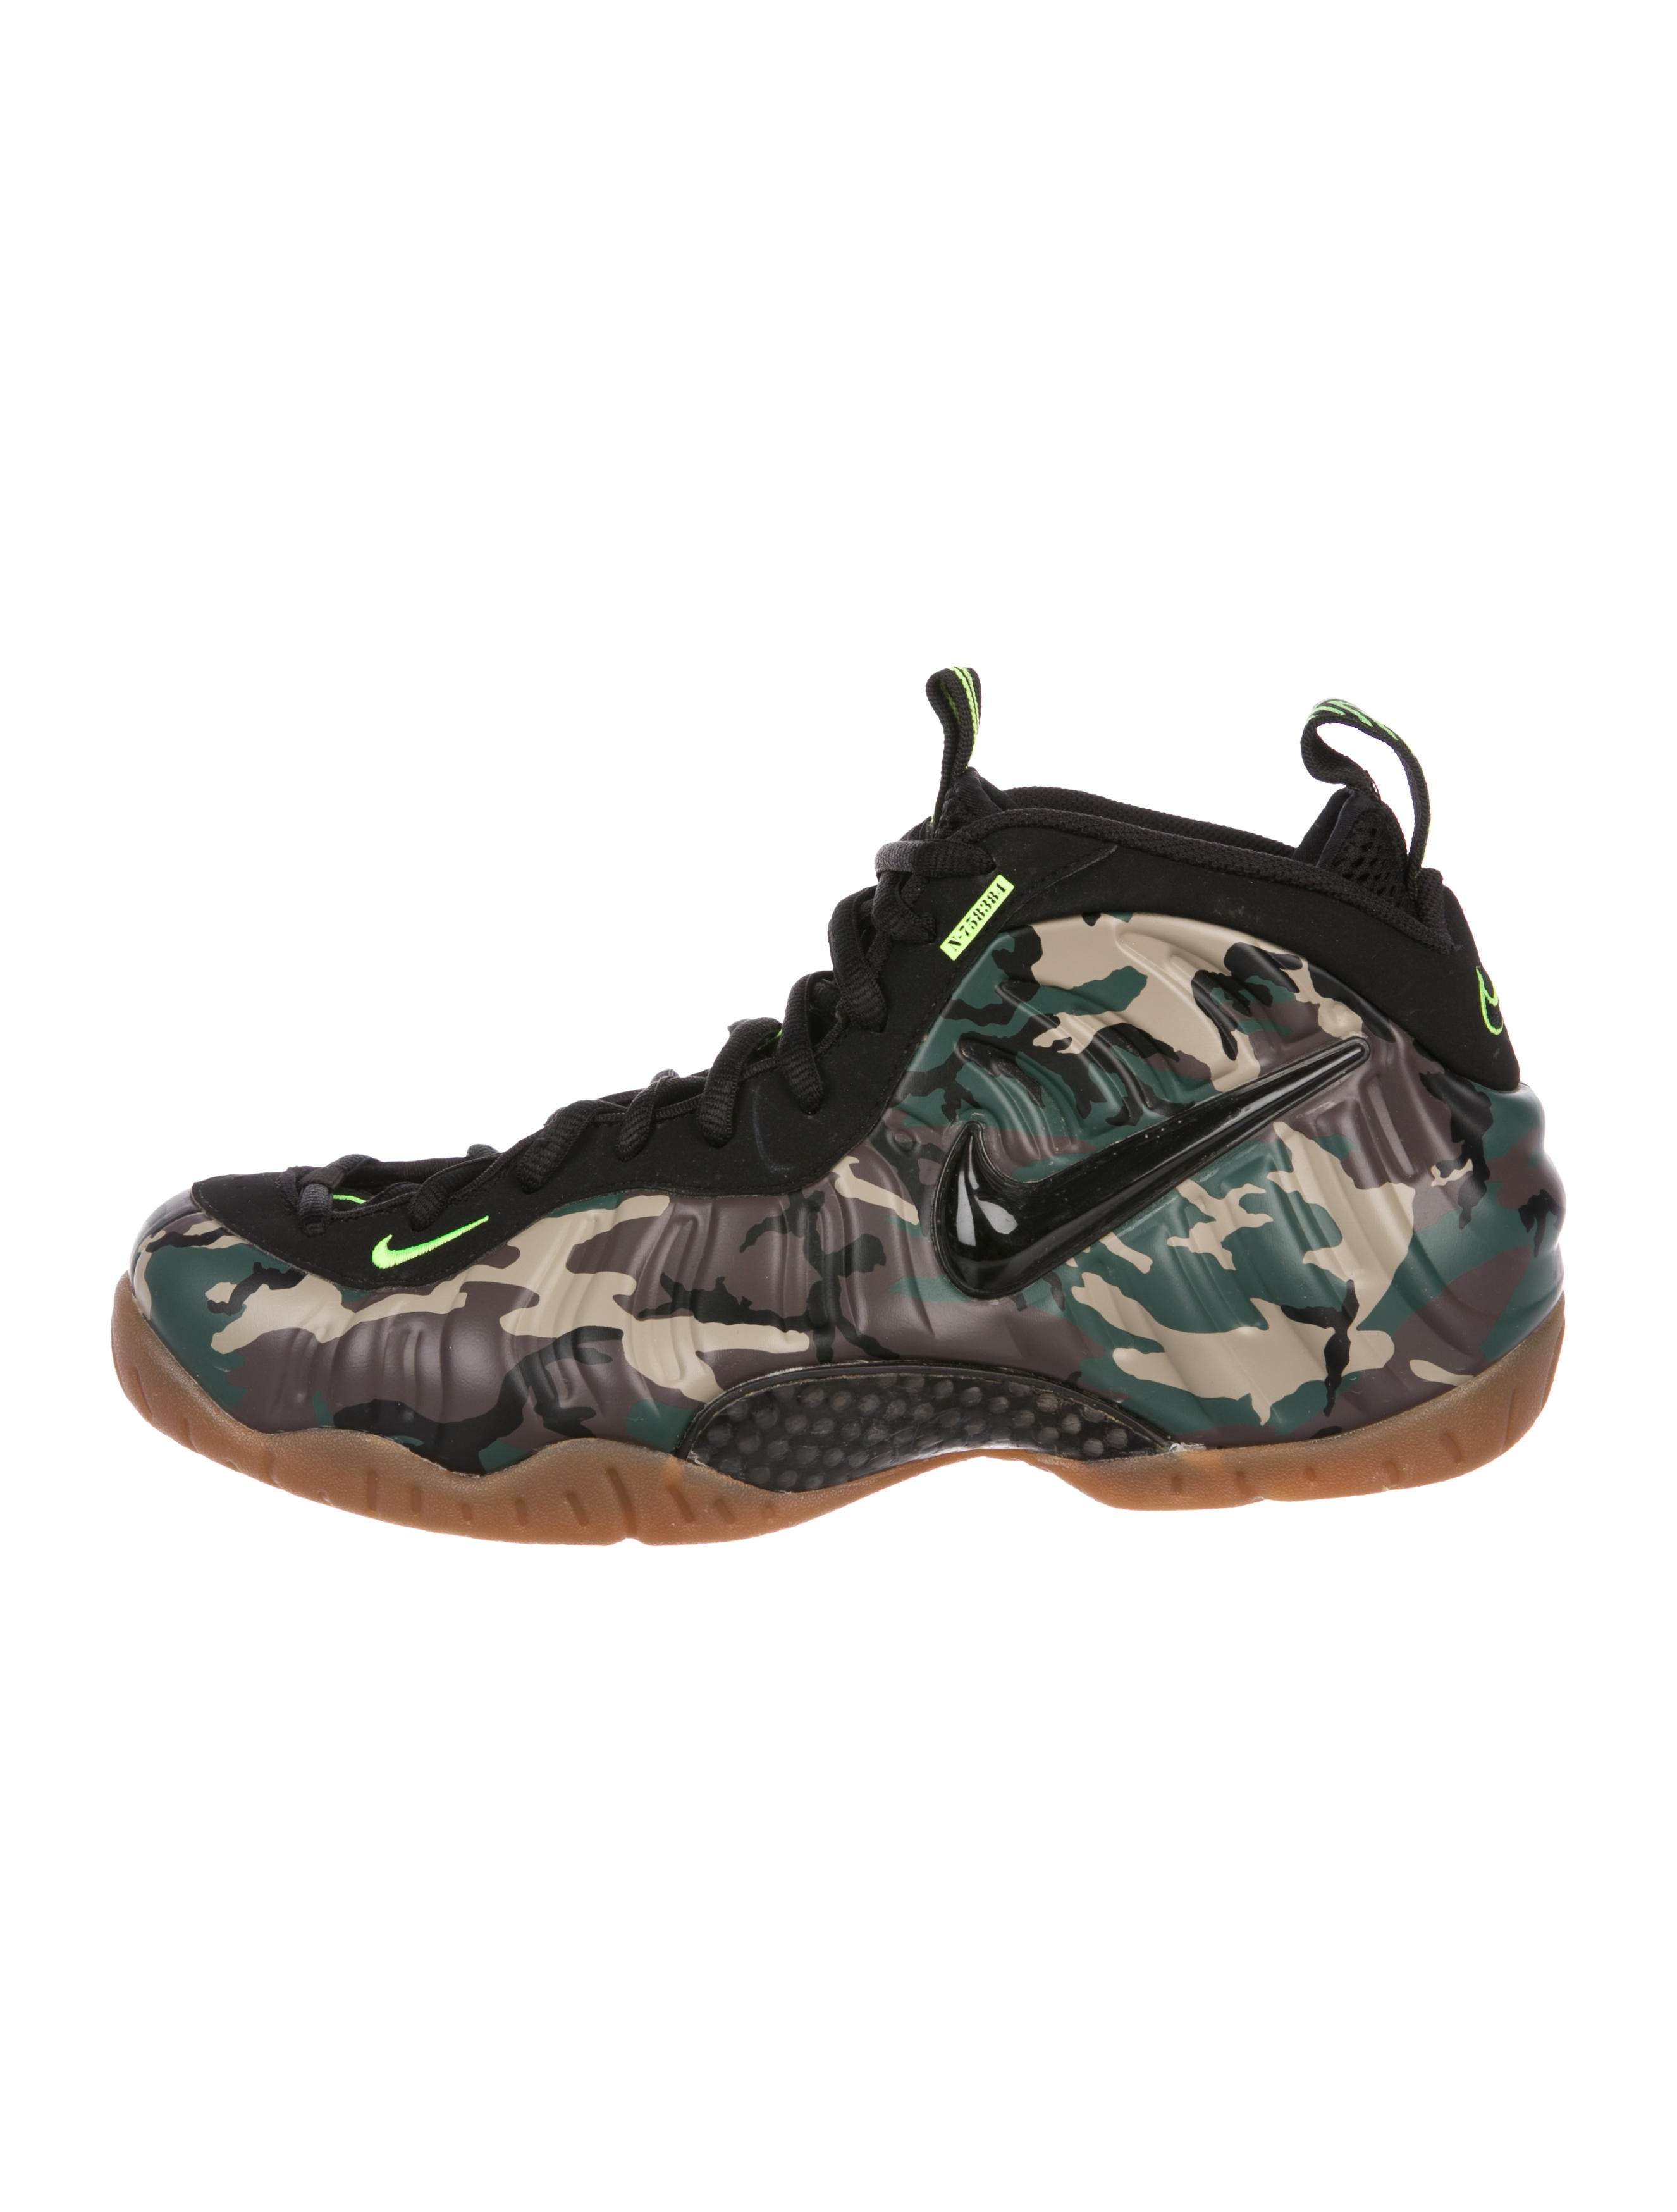 7eb13b5312ecf Nike Air Foamposite Pro  Army Camo  Sneakers - Shoes - WU231241 ...